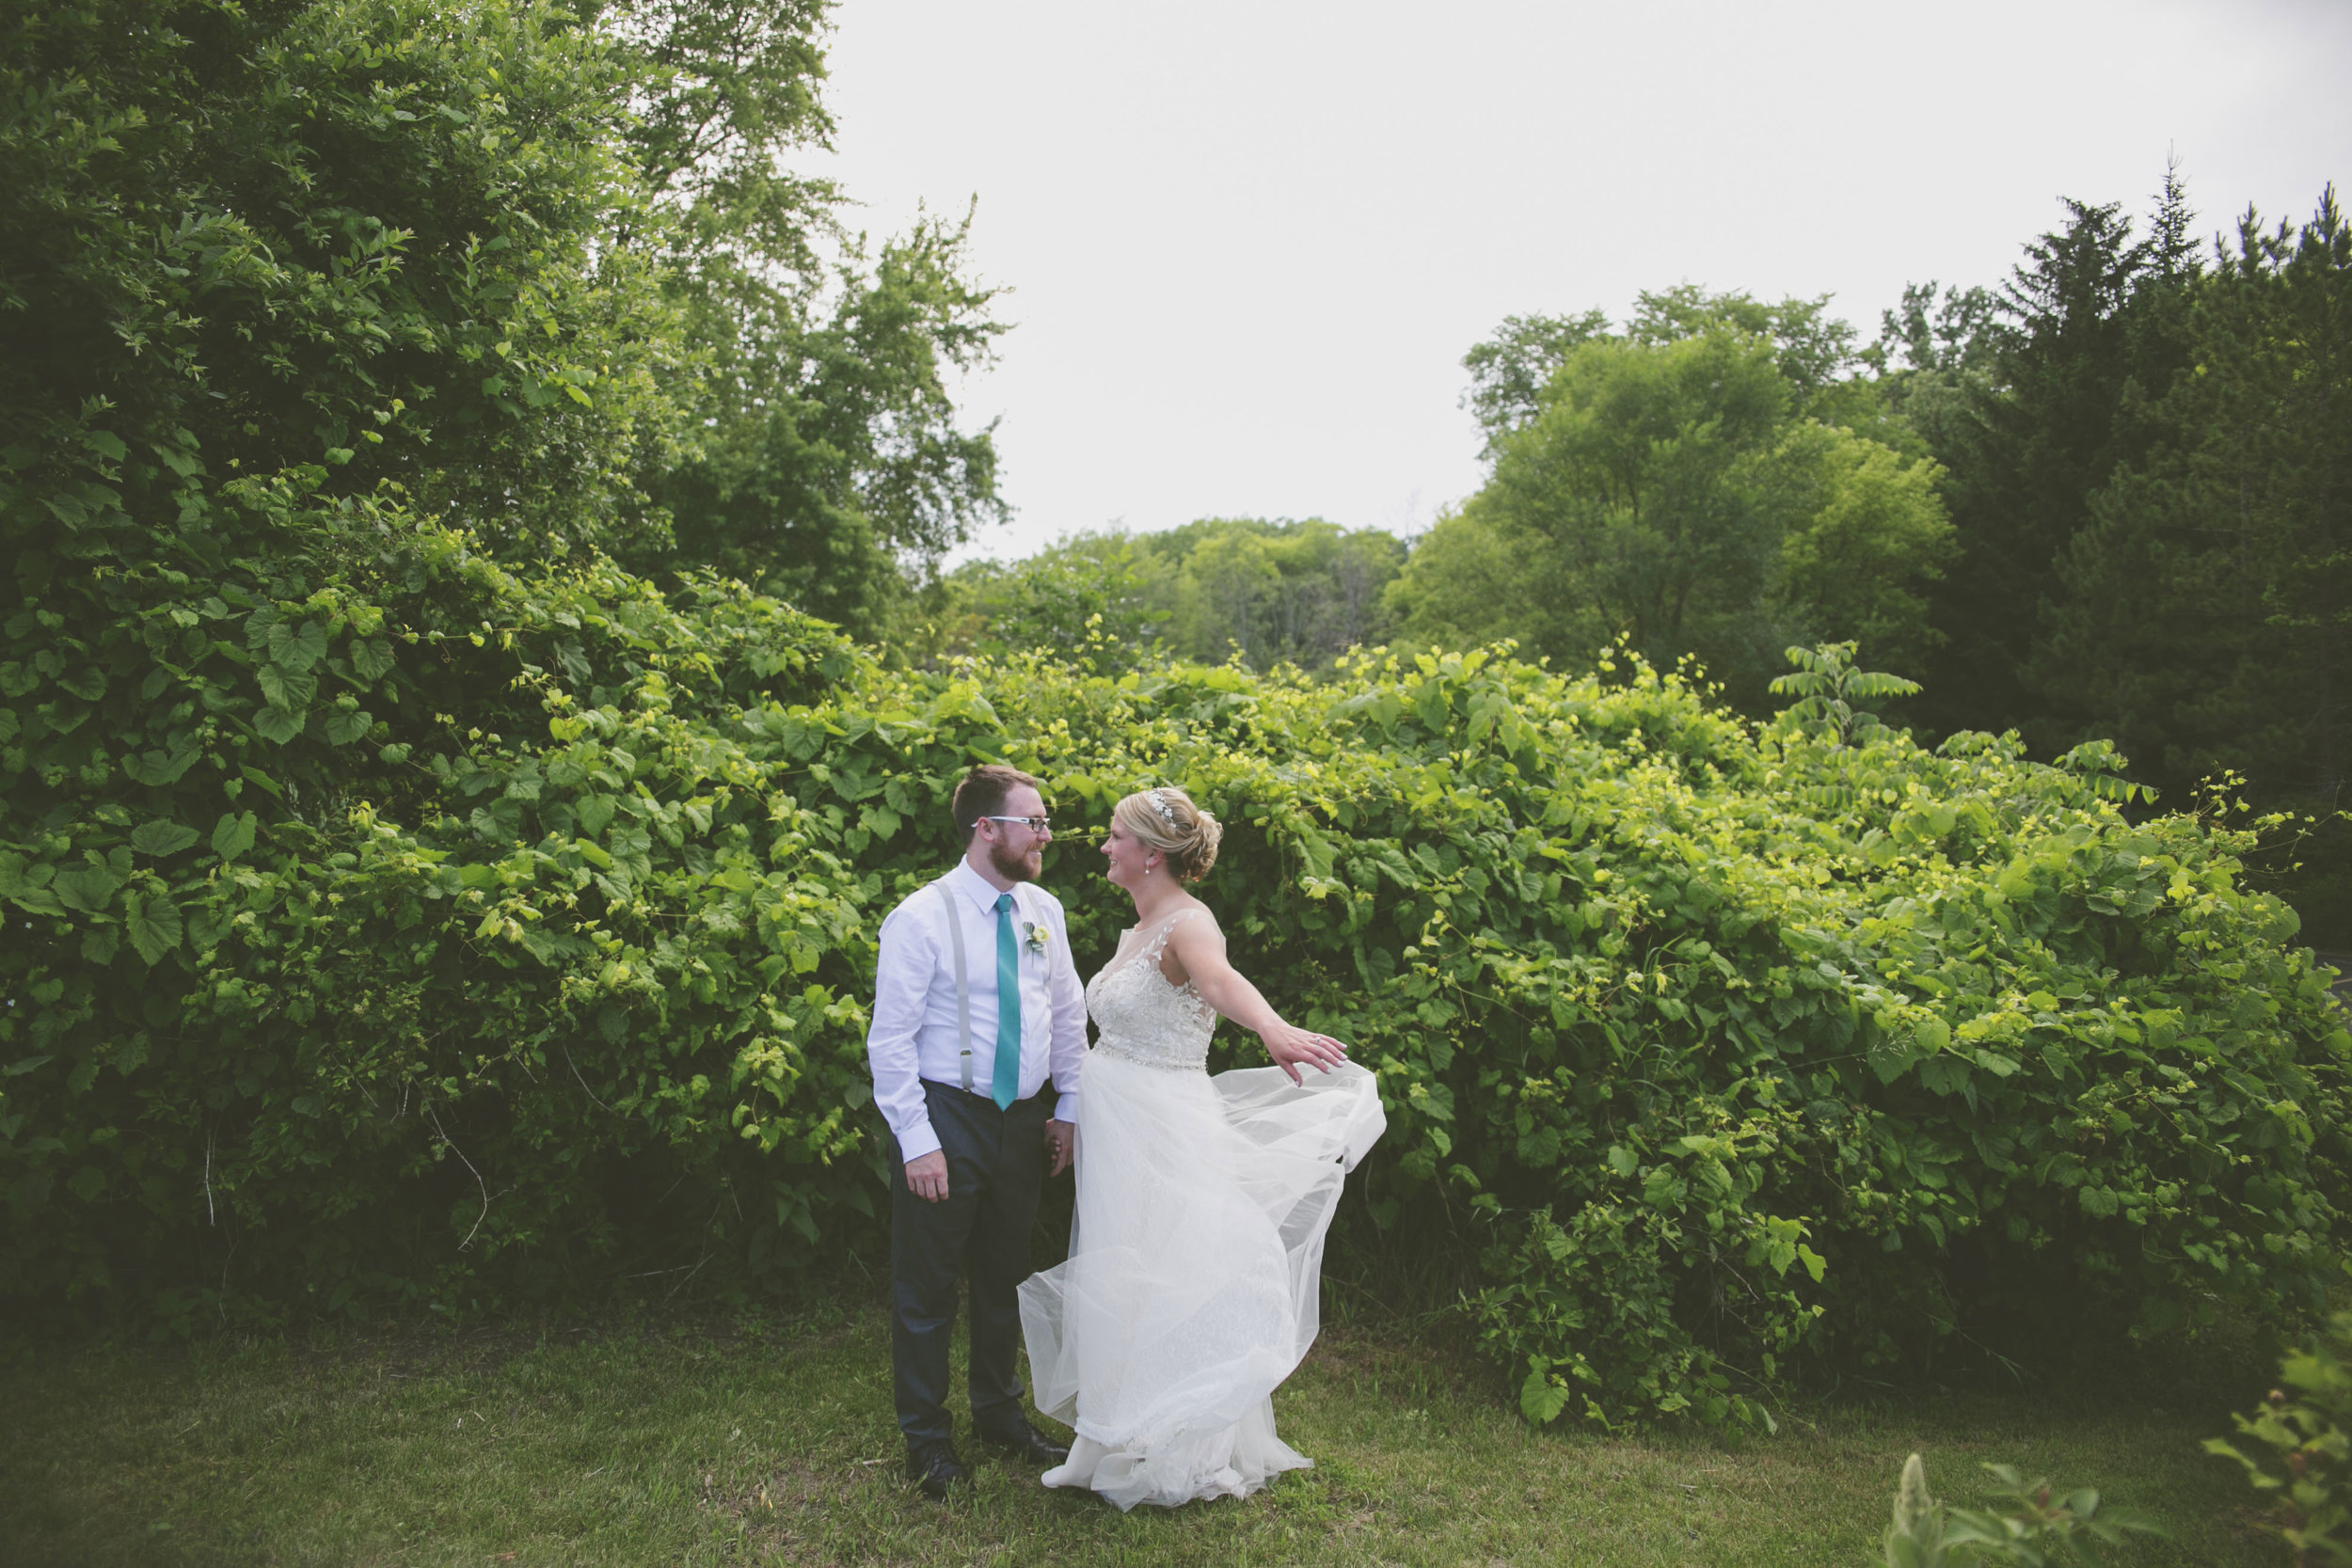 rrp+d_stephanie+aaron_wedding_blog54.JPG